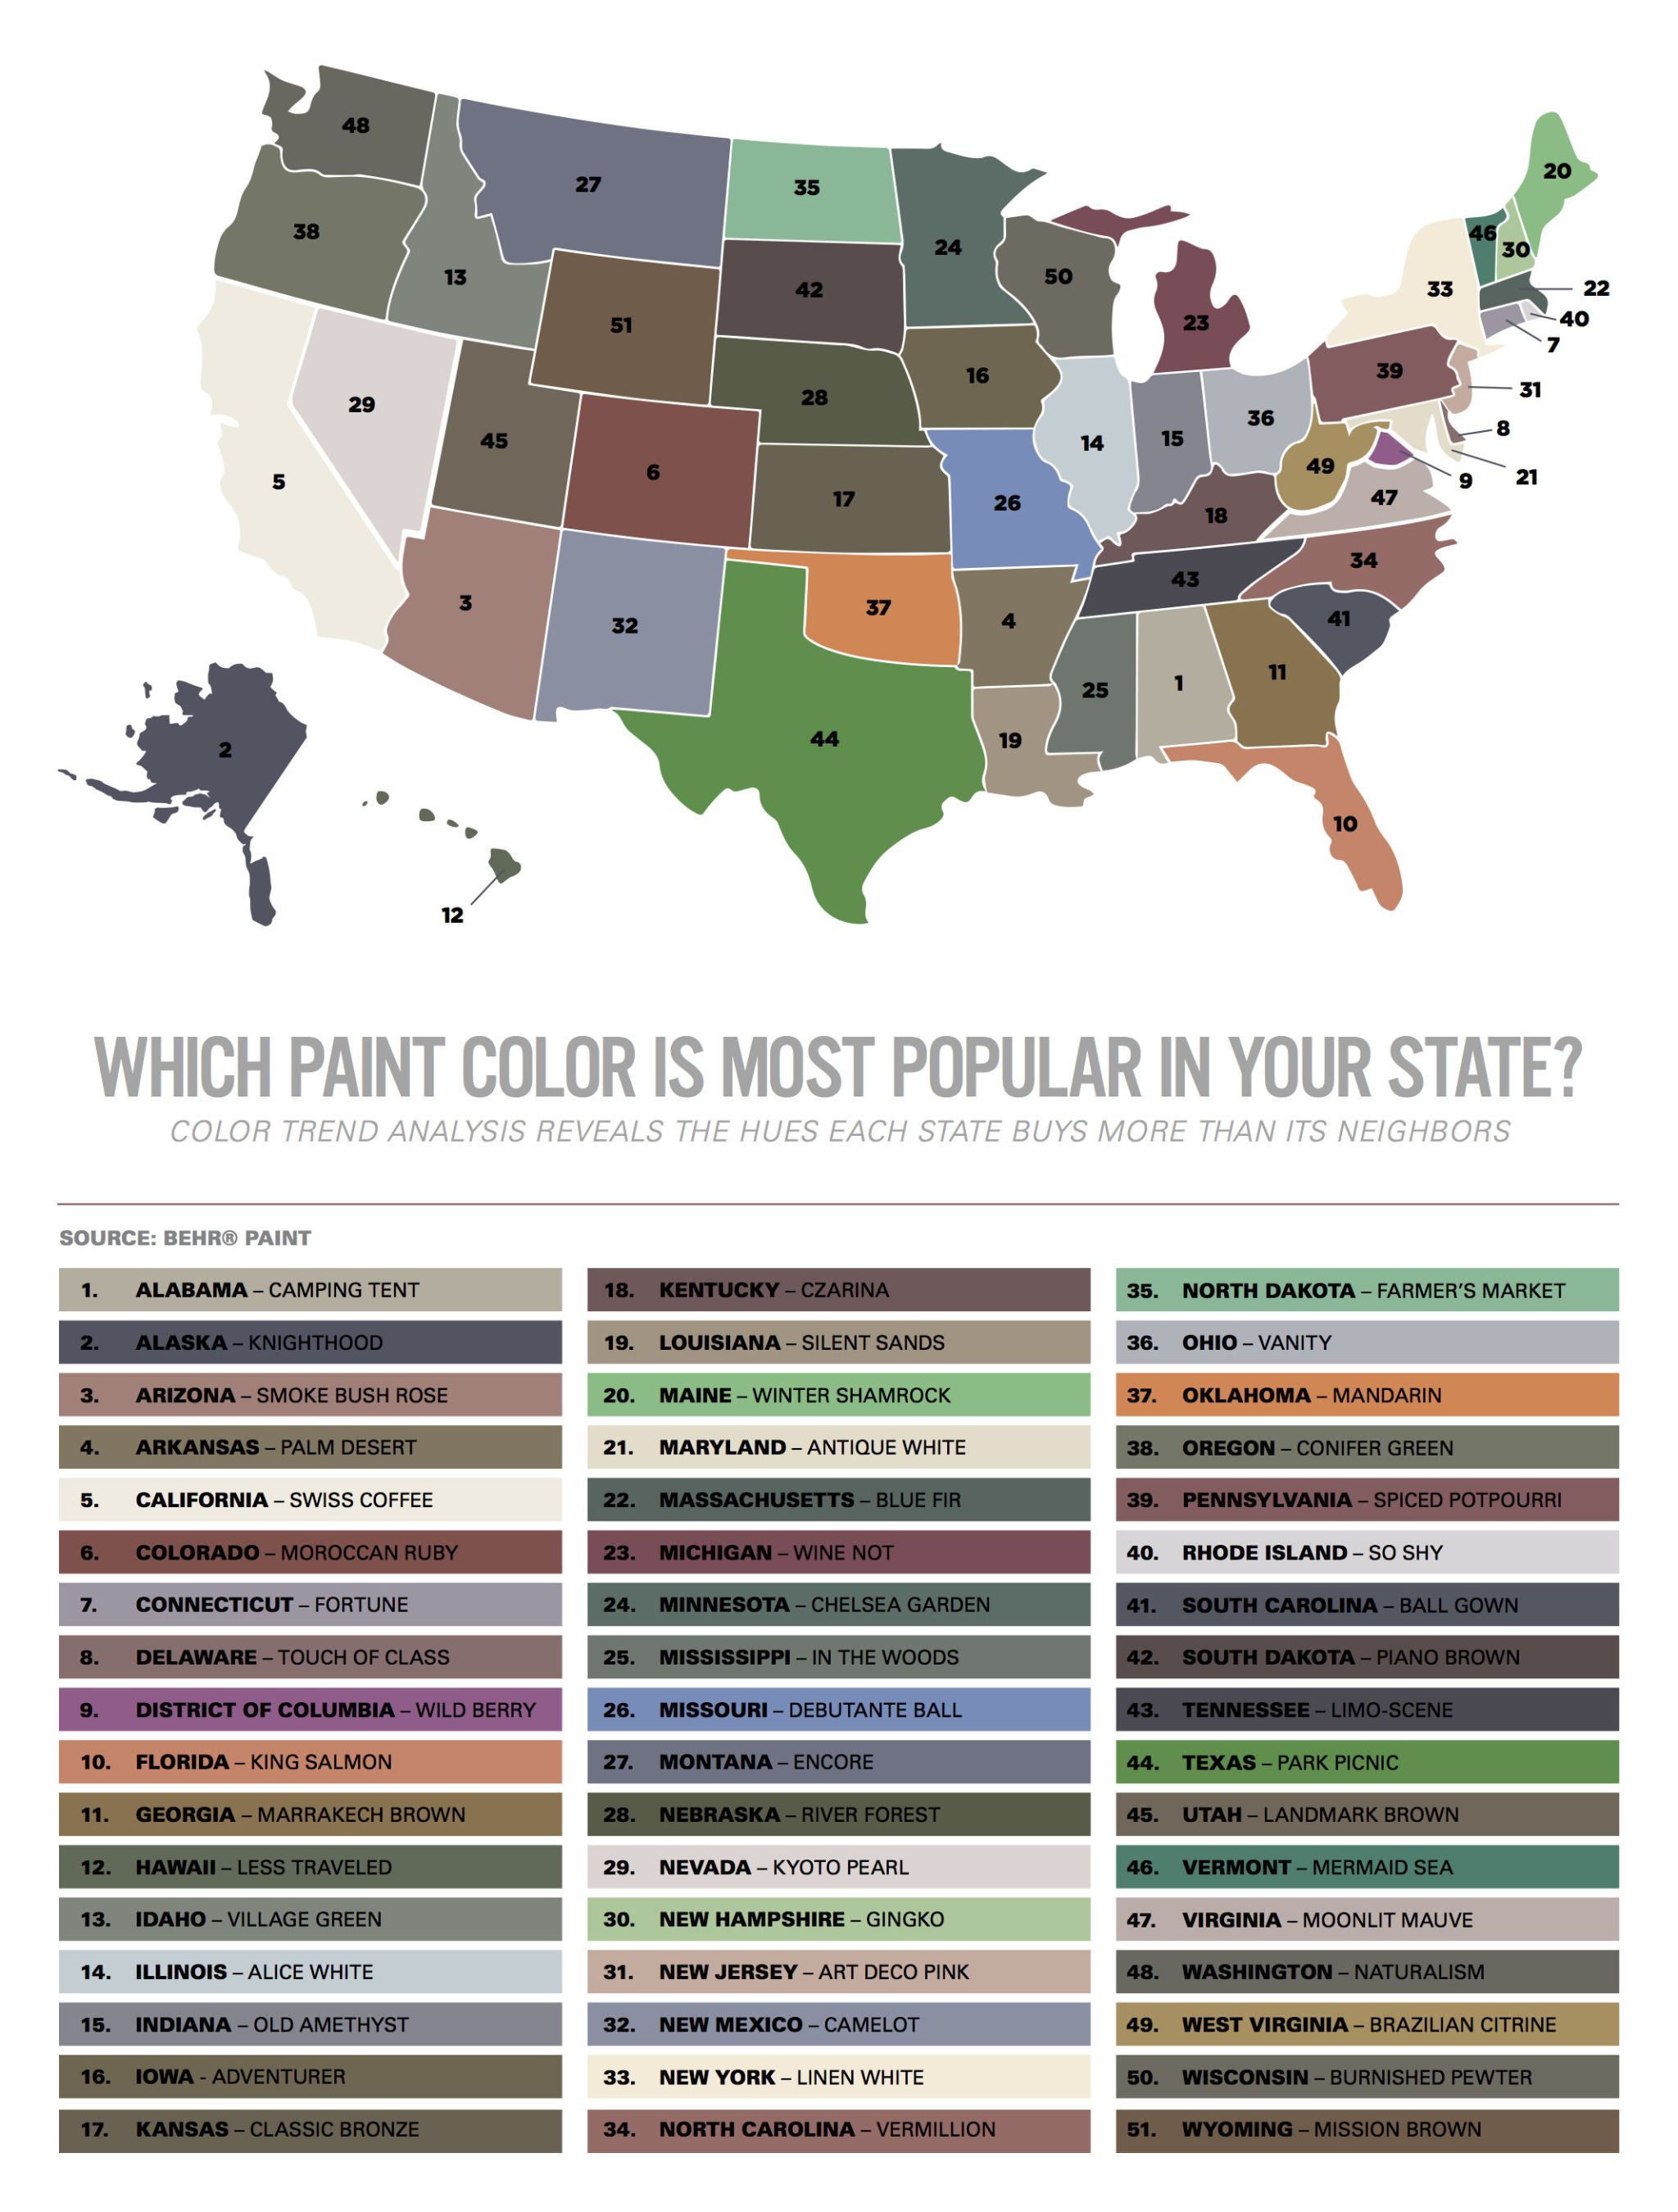 Most Popular Paint Colors By State